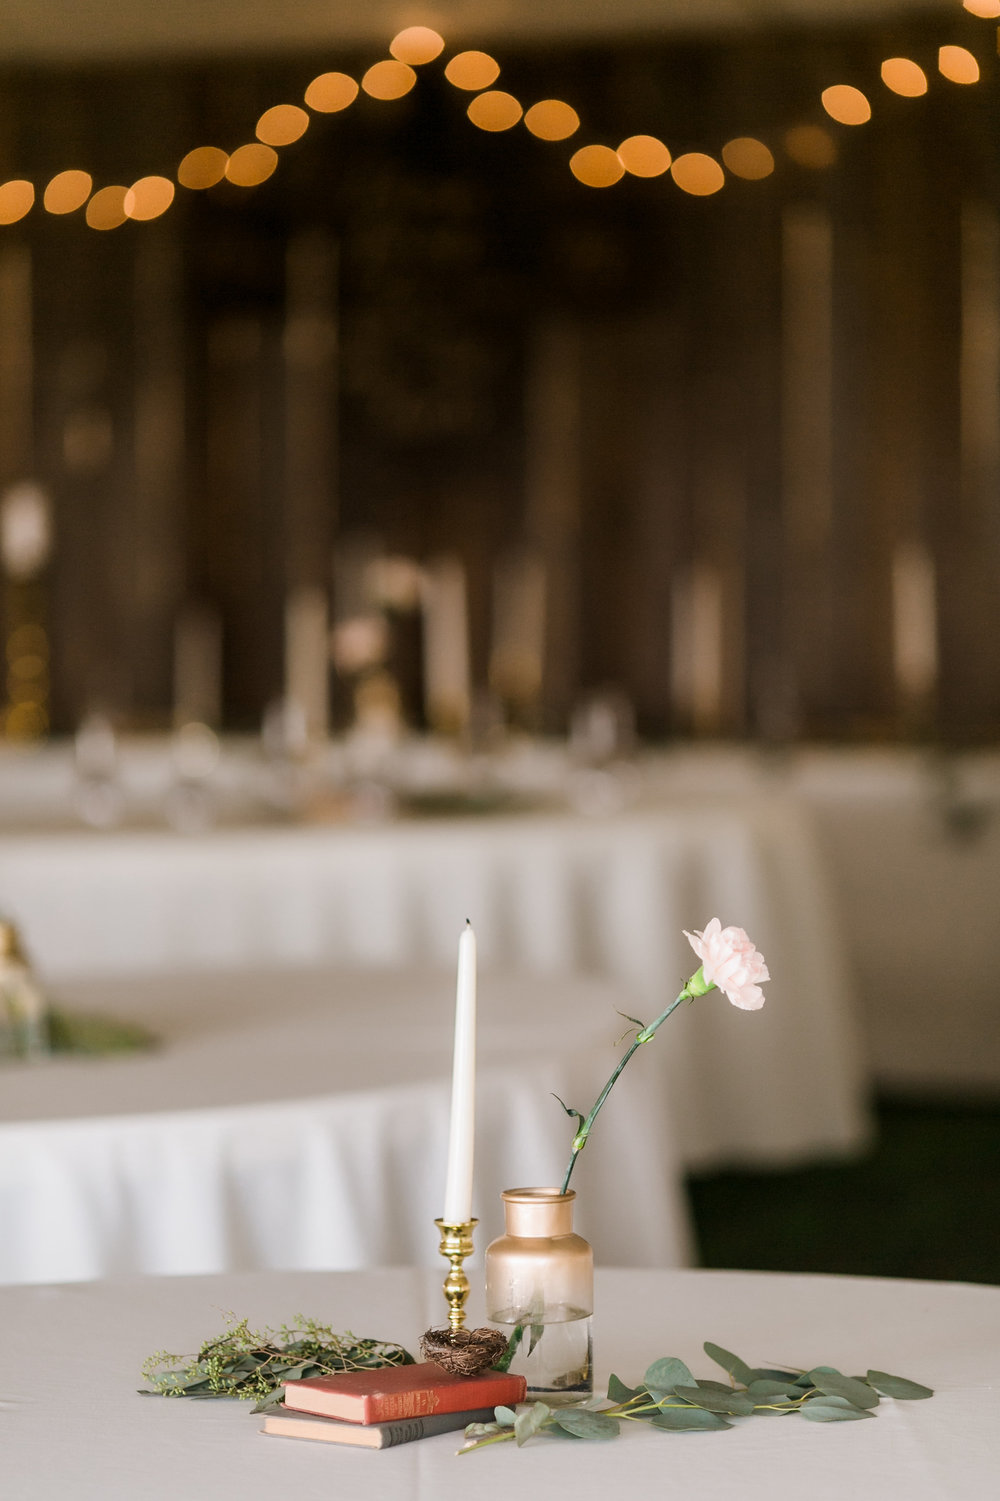 MissouriRusticWedding_StLouisWeddingPhotographer_AliciaDan_CatherineRhodesPhotography-2857-Edit.jpg